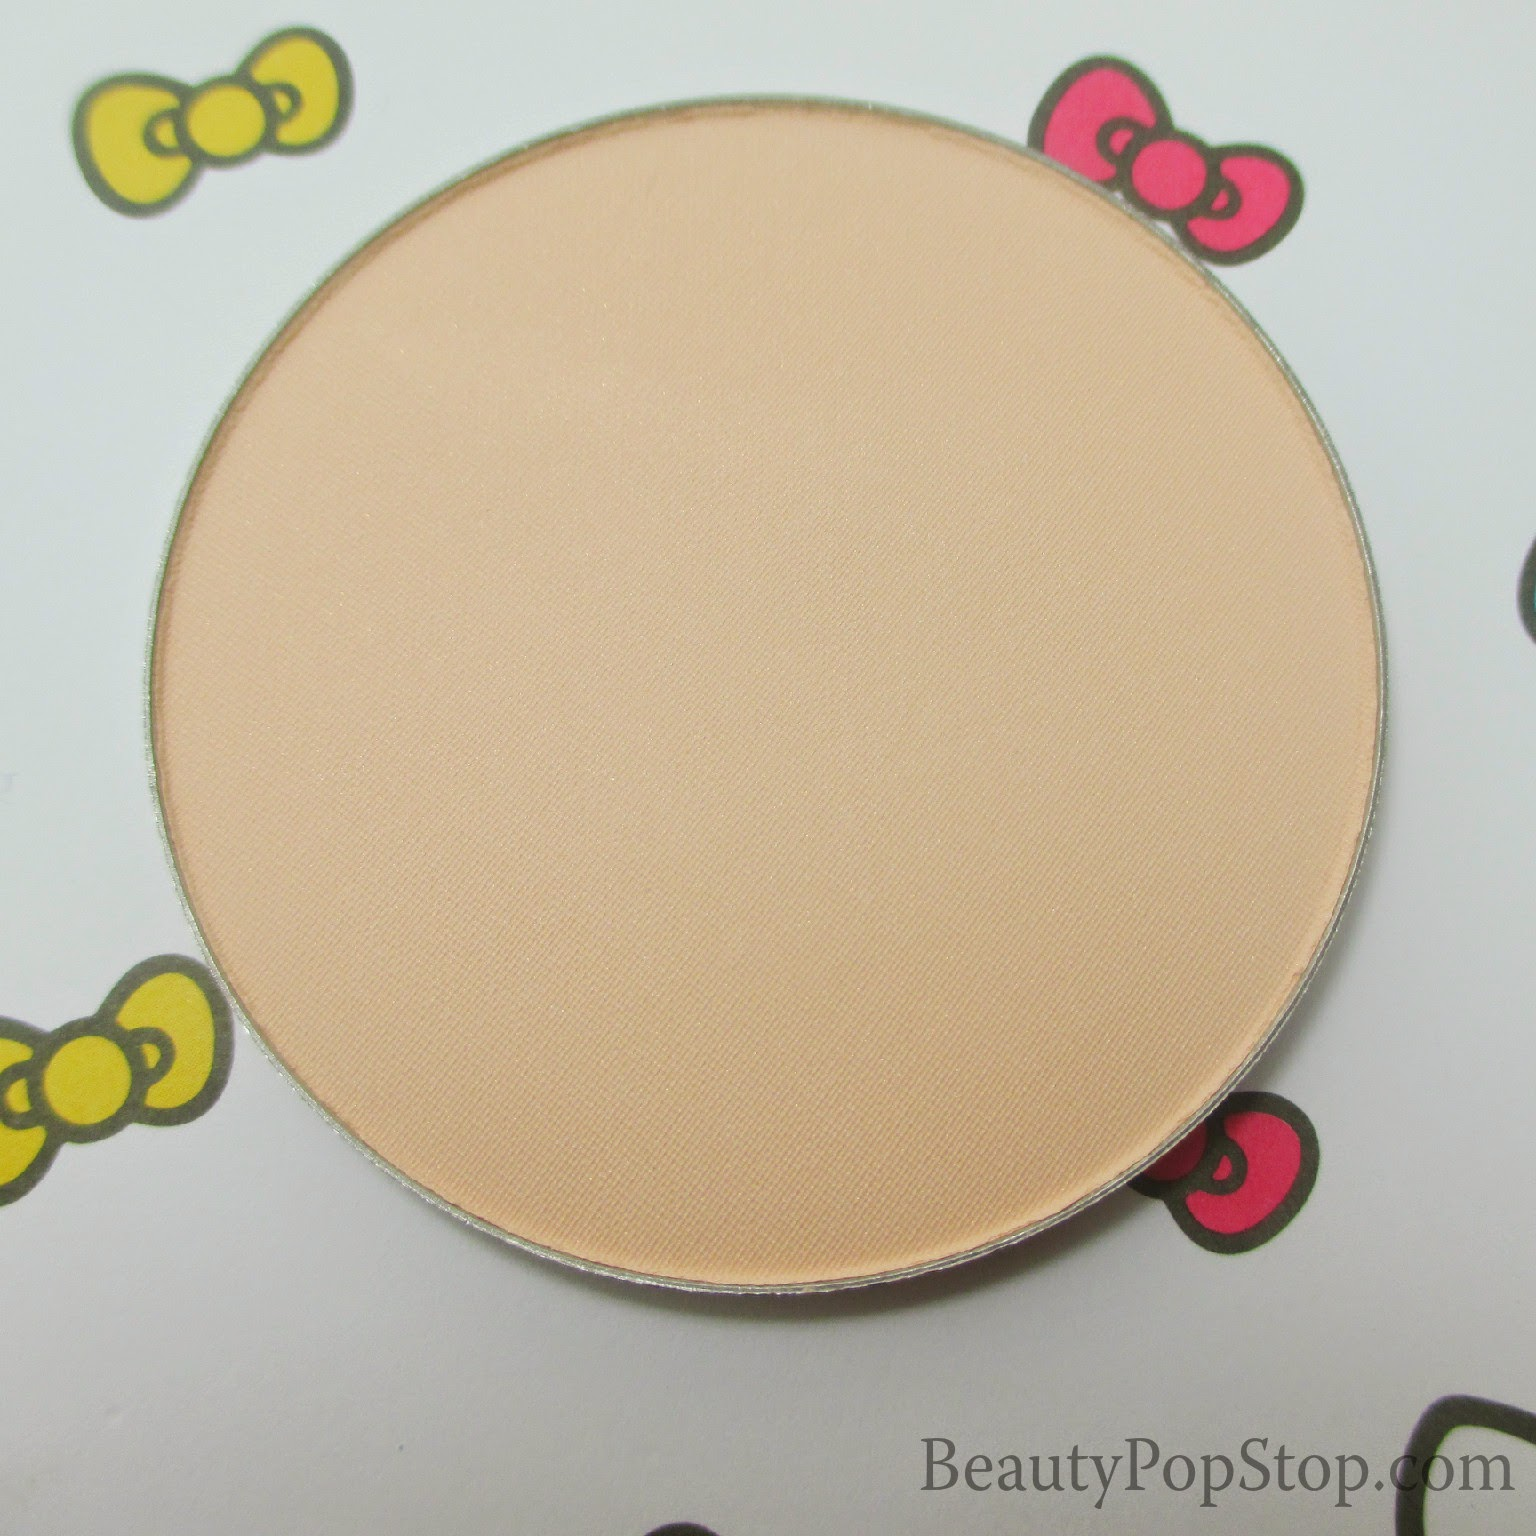 inglot freedom system illuminizing hd pressed powder 402 review